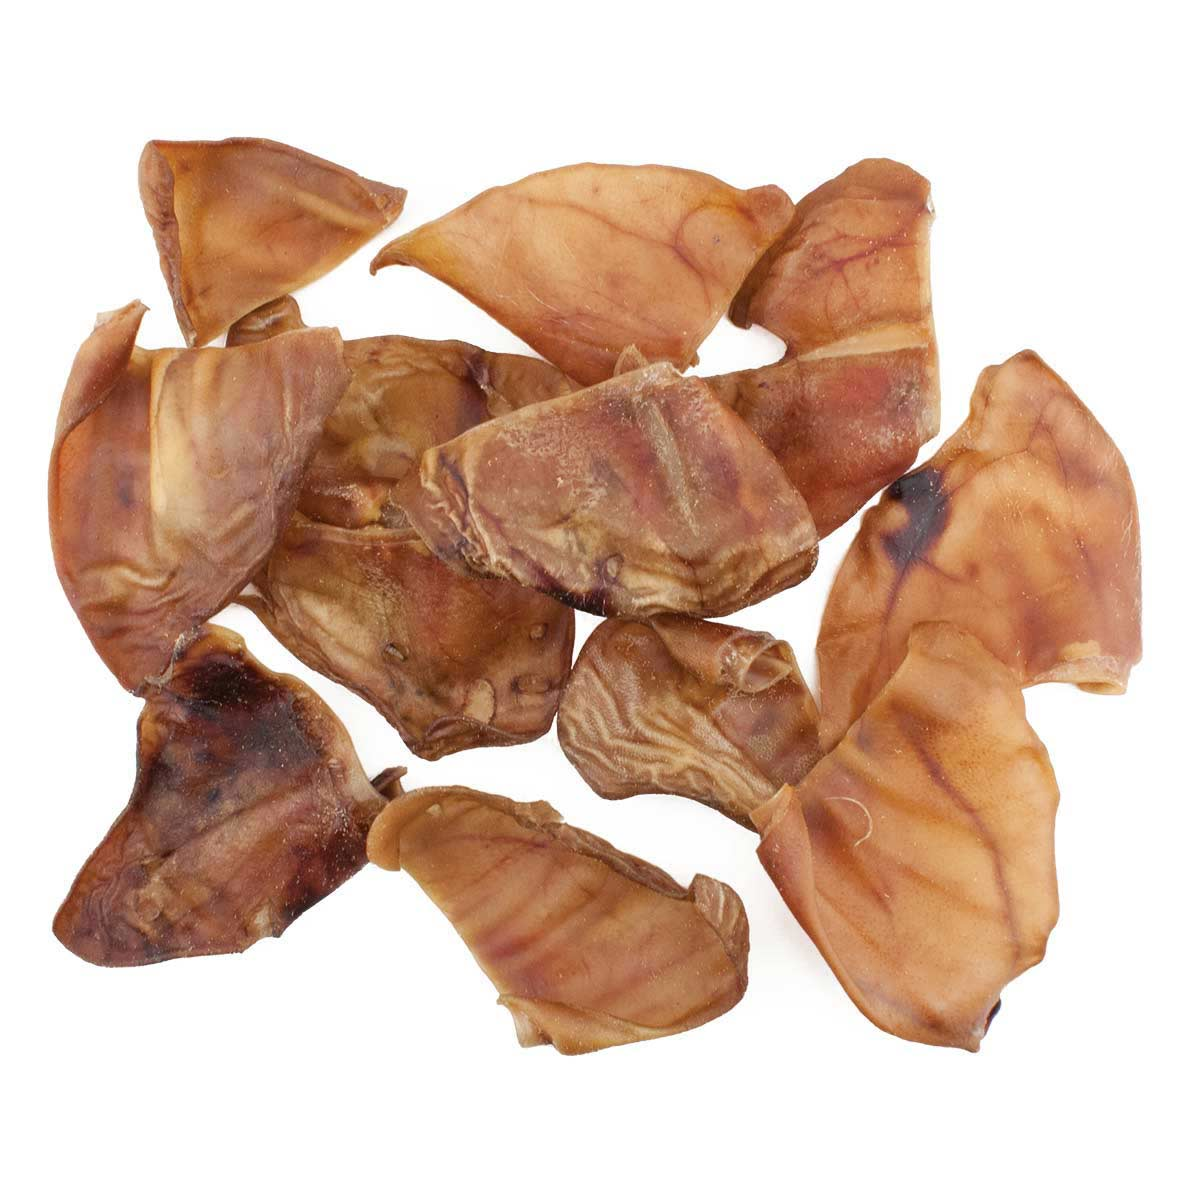 100 Pack Pig Ears Chews for Dogs